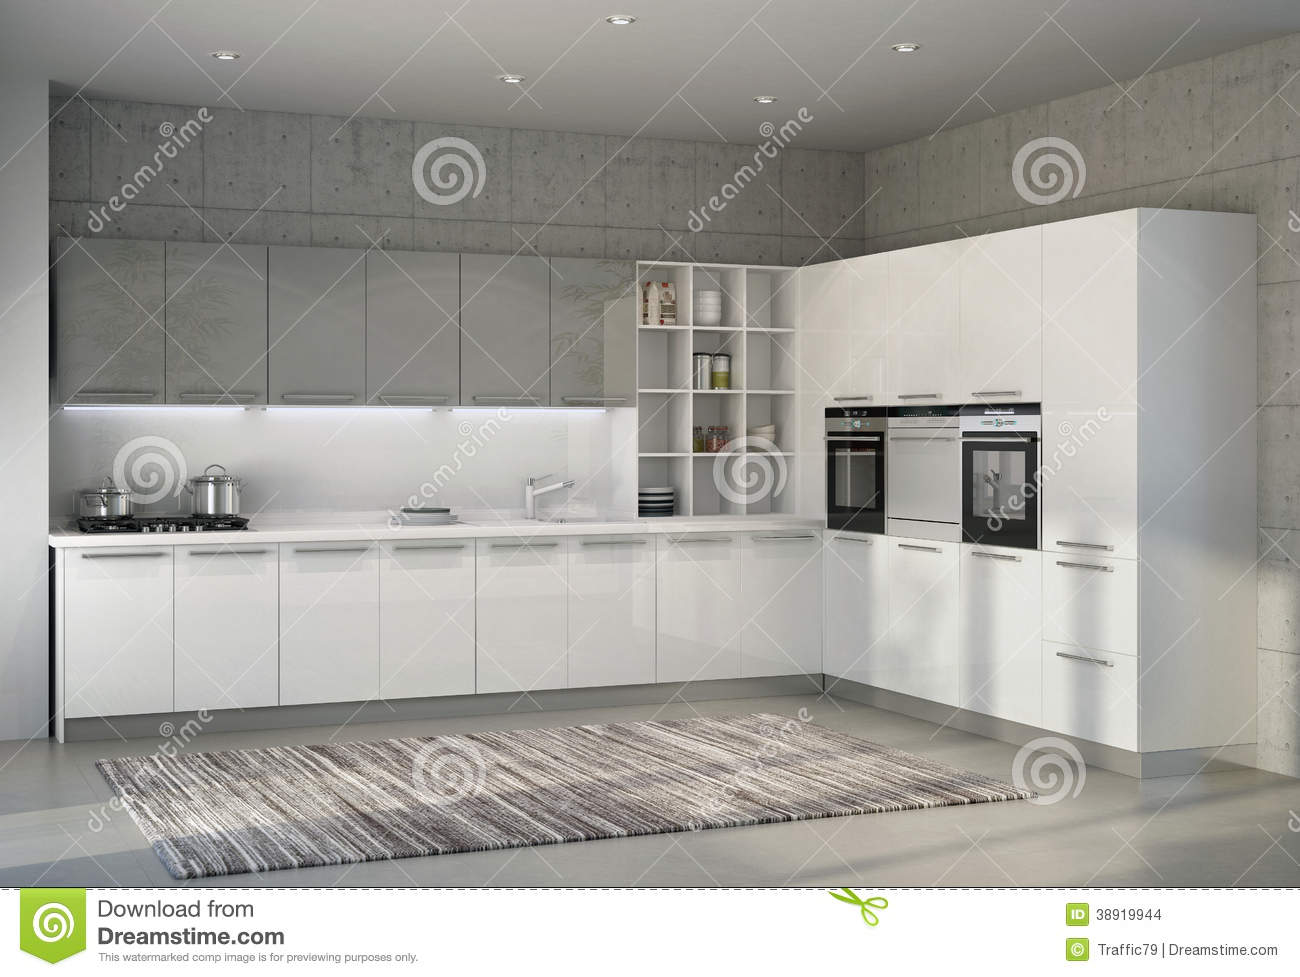 Cucina Moderna Bianca Lucida - Home Design E Interior Ideas ...